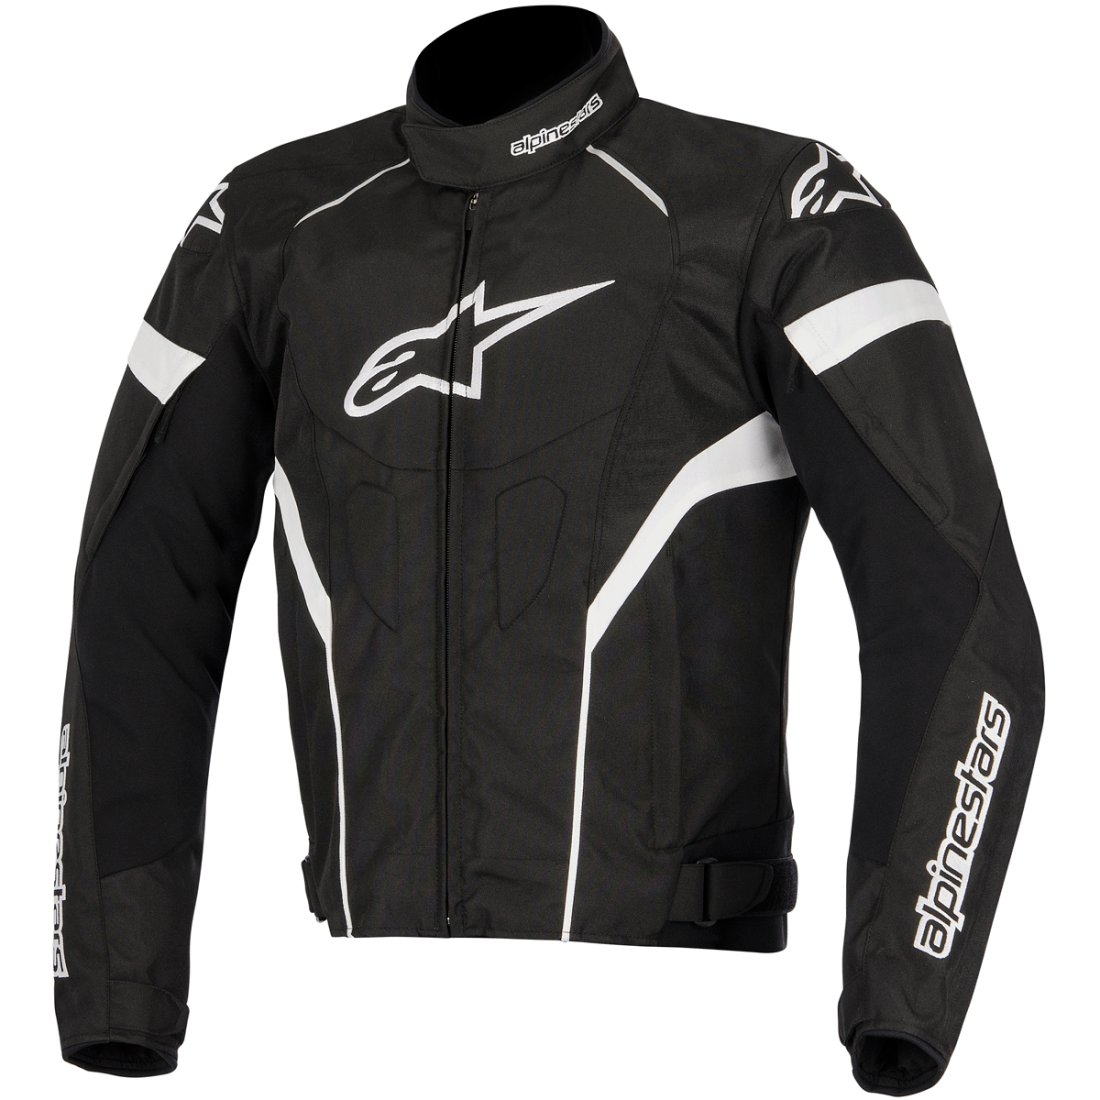 blouson alpinestars t gp plus r black white motocard. Black Bedroom Furniture Sets. Home Design Ideas